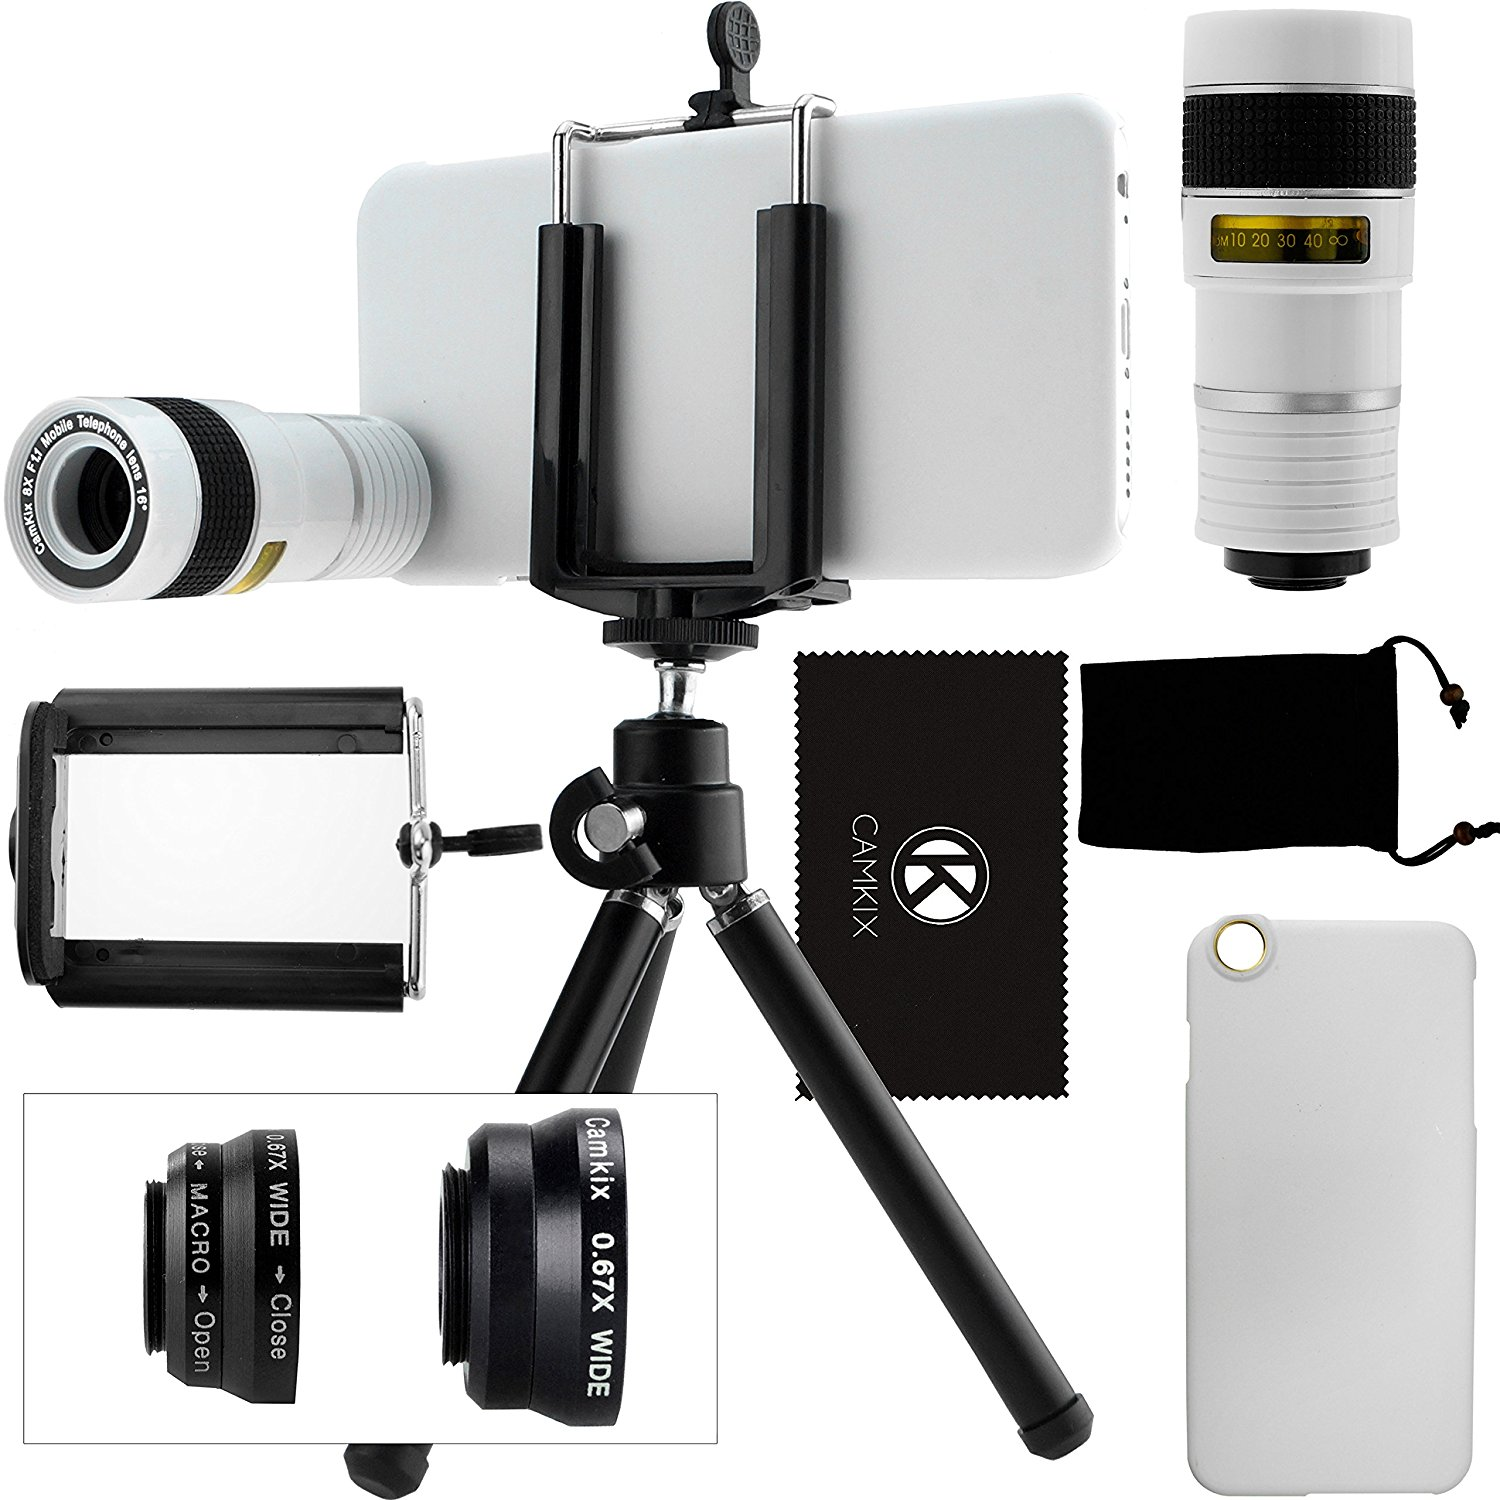 CamKix Camera Lens Kit for iPhone 6 / 6S (NOT SUITABLE FOR IPHONE 6 / 6S PLUS) - including 8x Telephoto / Fisheye / 2in1 Macro and Wide Angle Lens / Tripod / Holder / Hard Case / Velvet Bag / Cloth